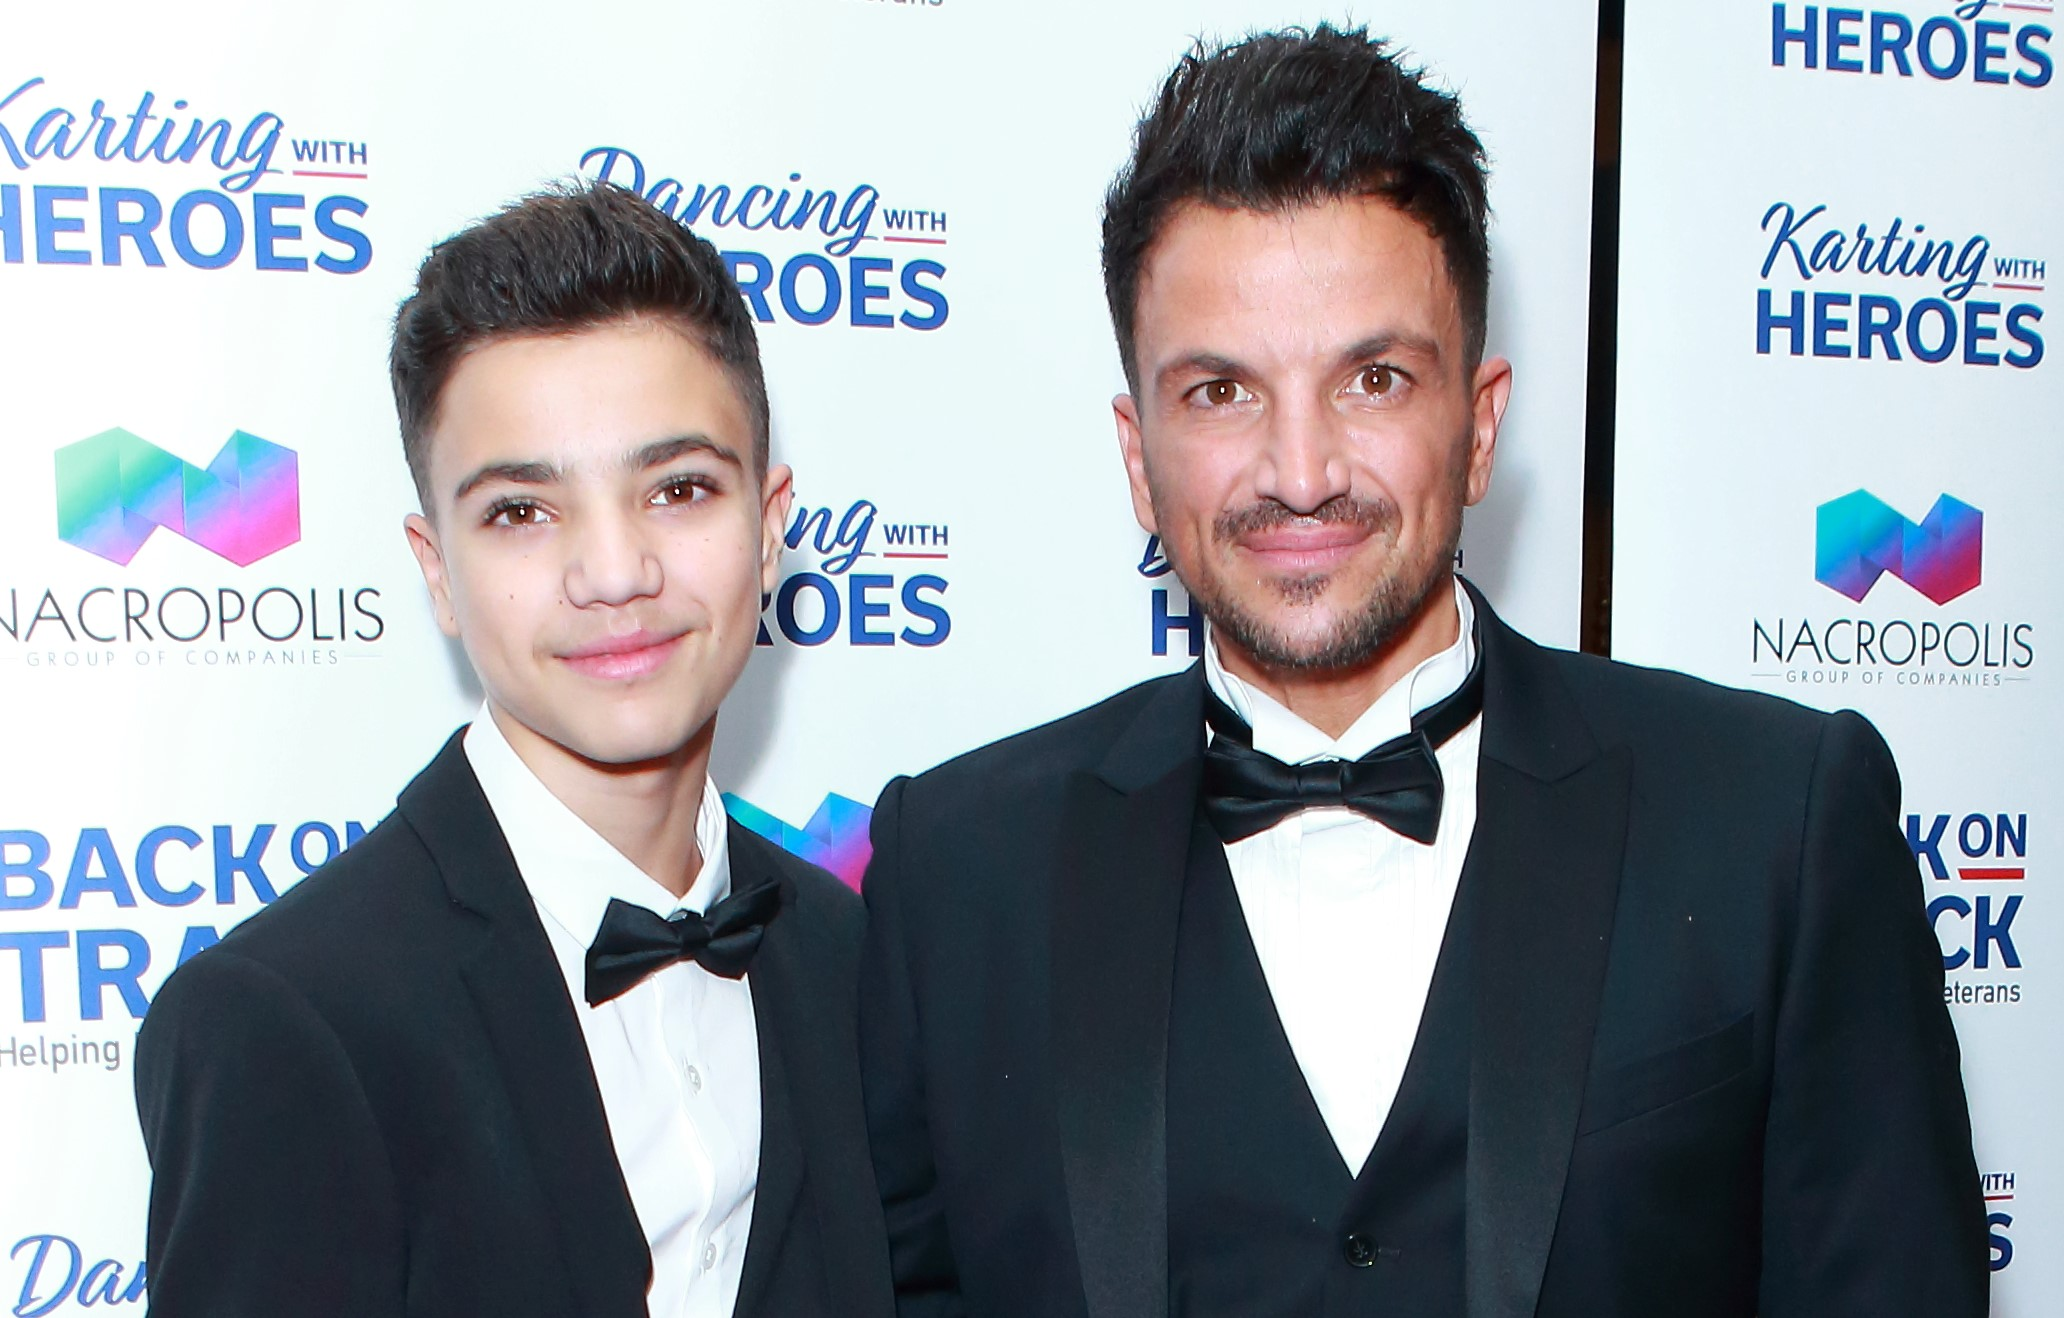 Peter Andre's son Junior 'showing signs of coronavirus'